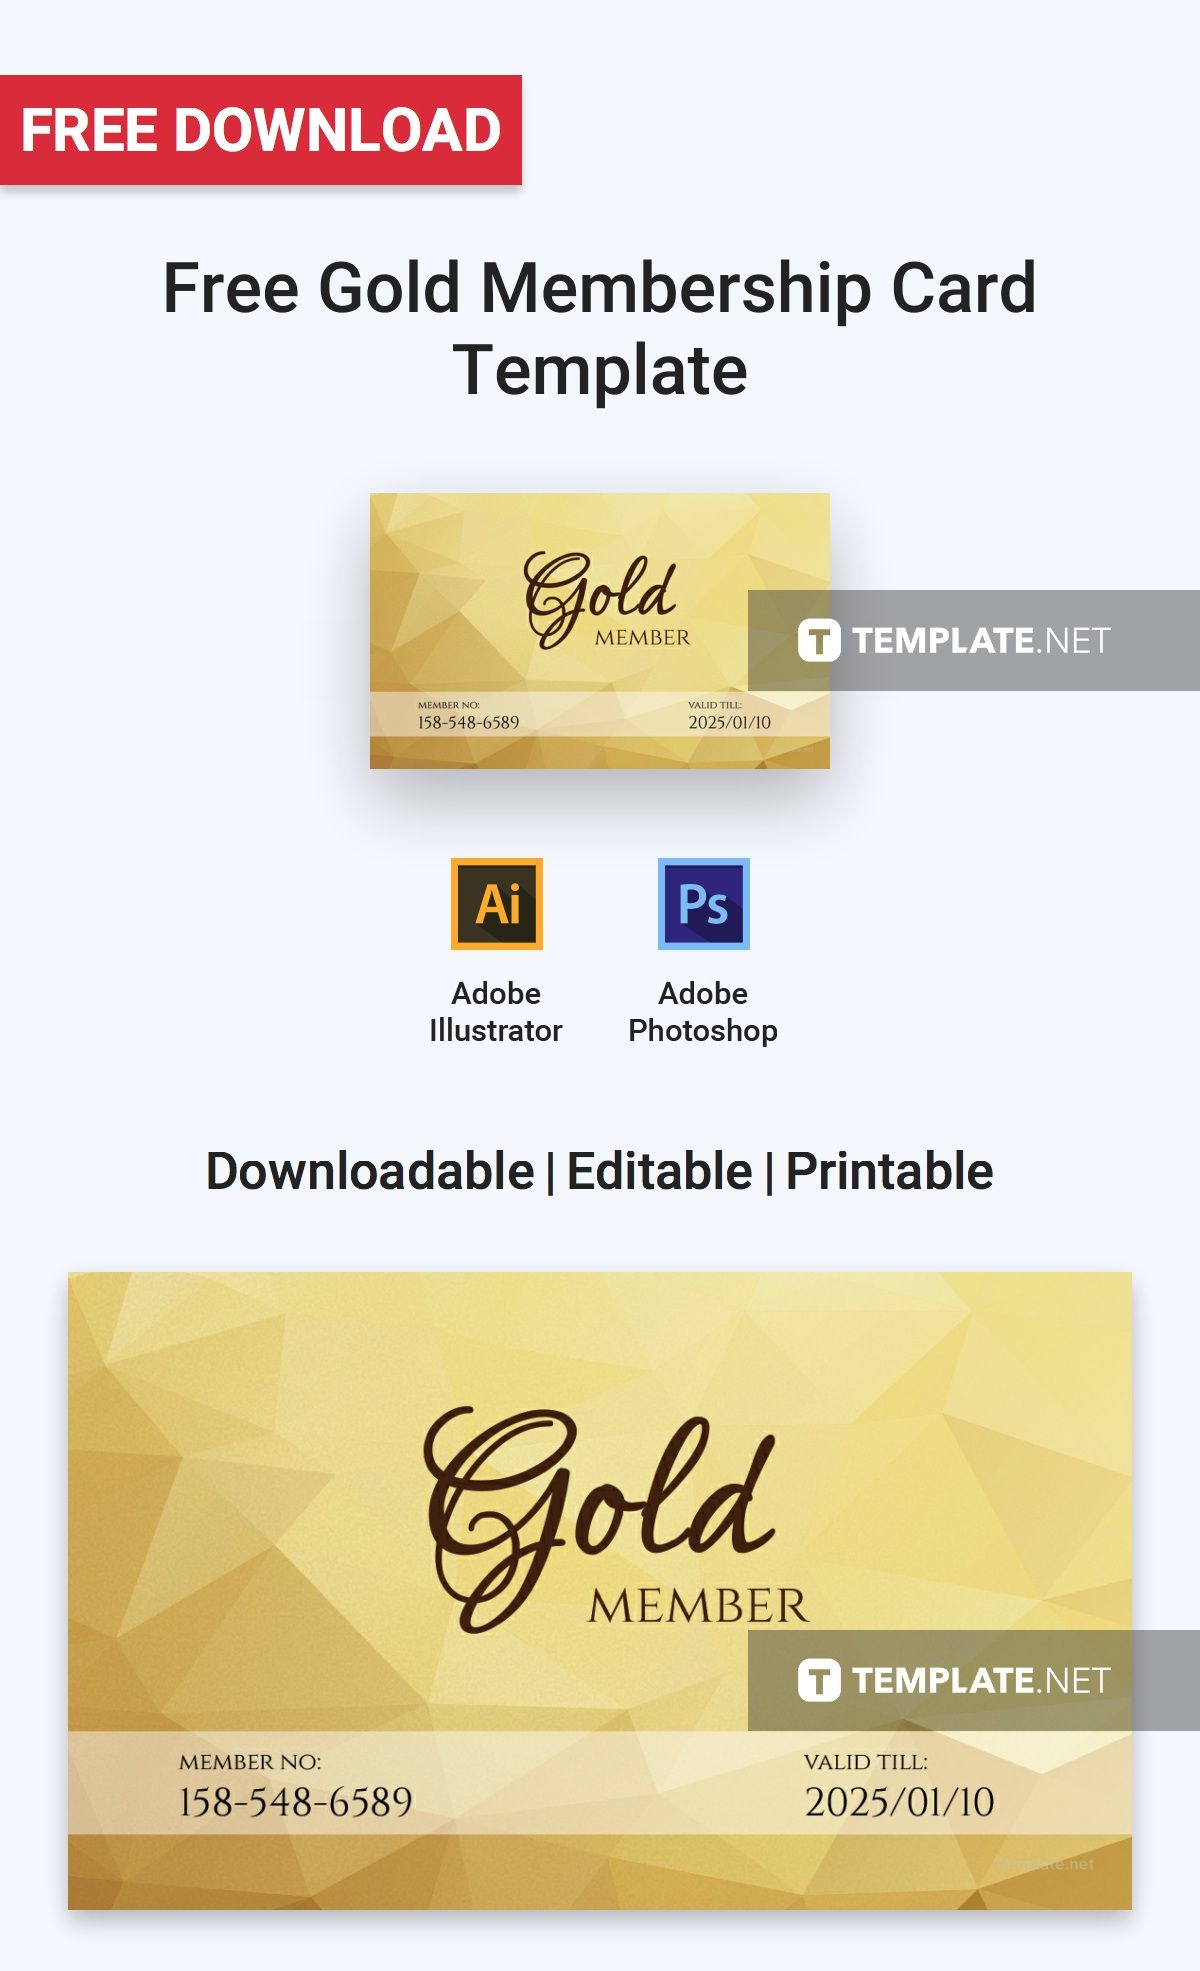 Gold Membership Card Template Free Pdf Word Psd Apple Pages Illustrator Publisher Membership Card Card Template Cards